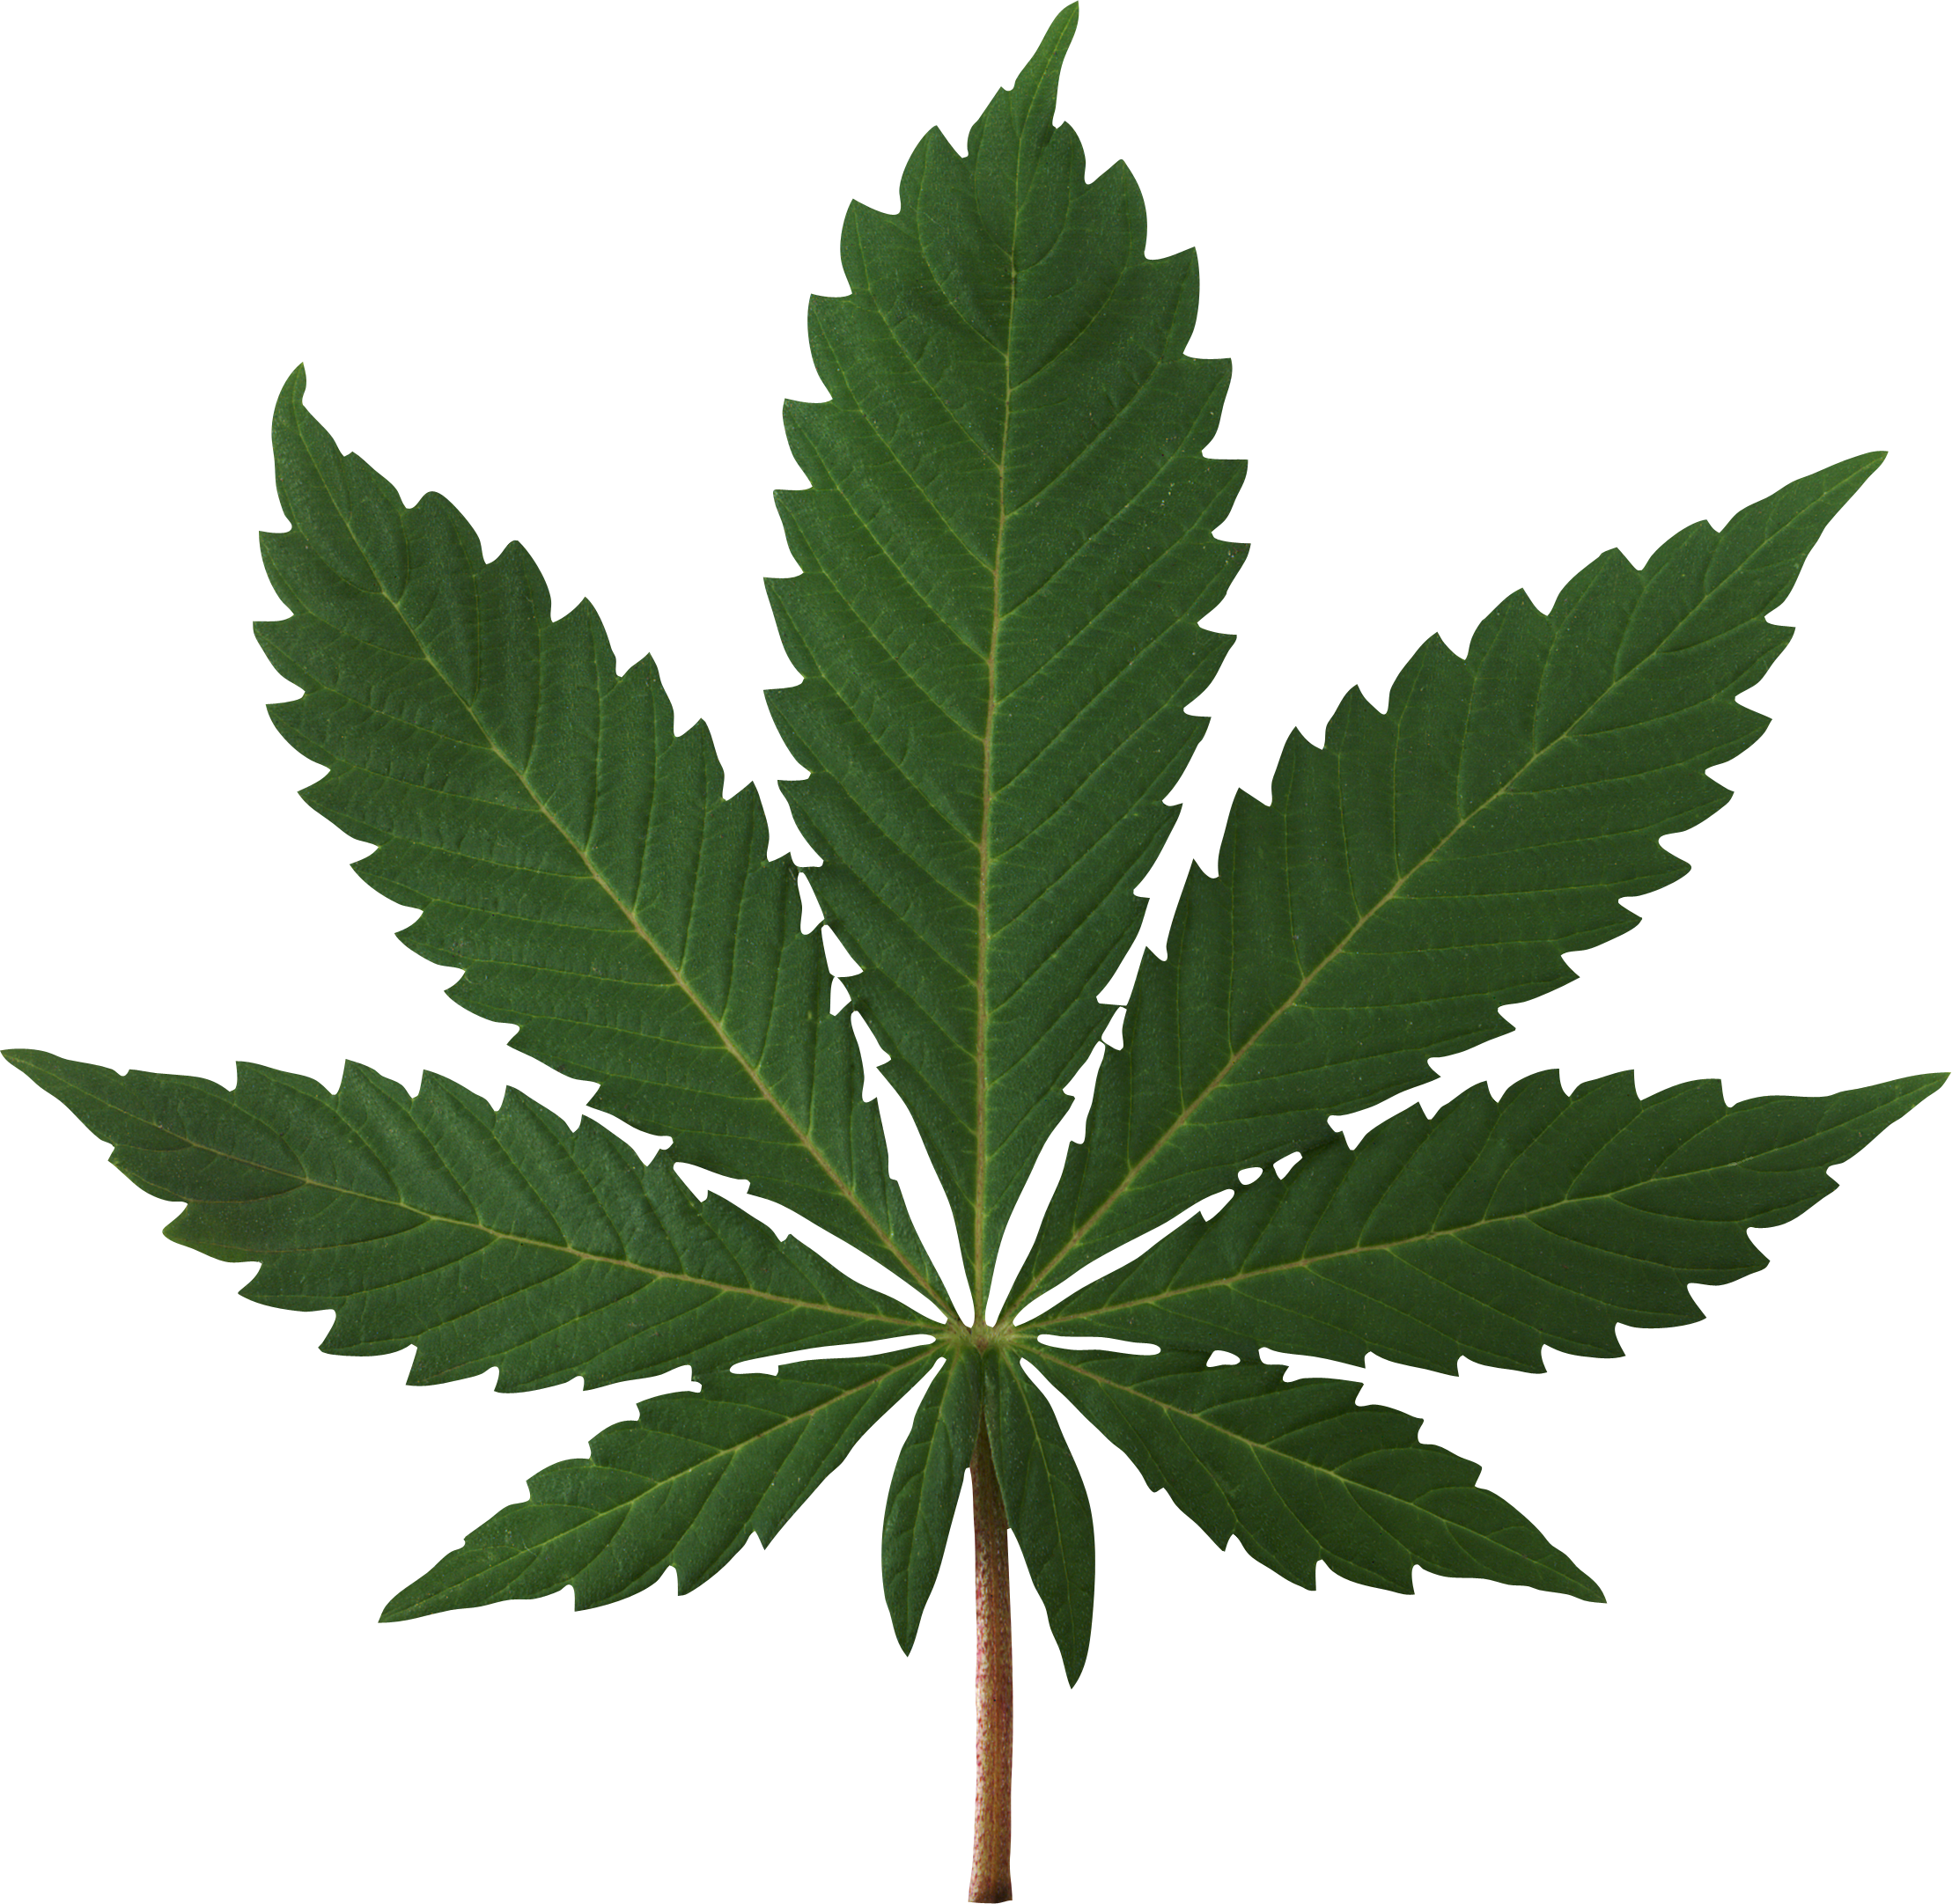 Weed flower clipart jpg library Cannabis Leaf PNG Image - PurePNG | Free transparent CC0 PNG Image ... jpg library